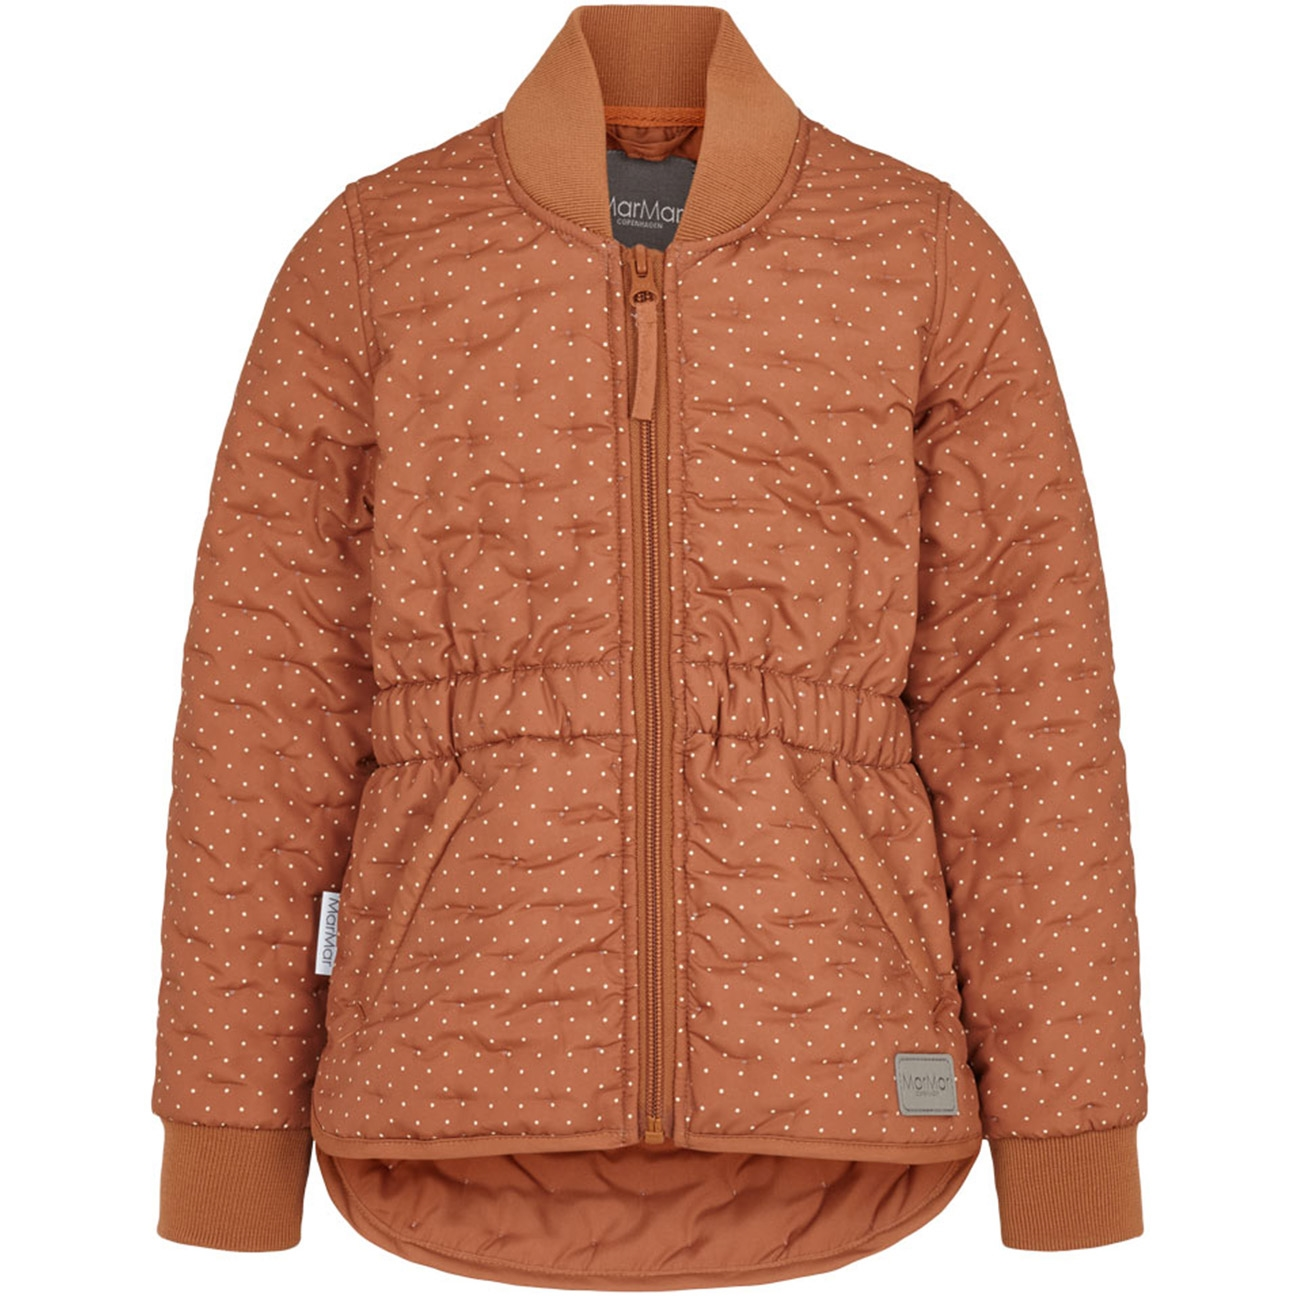 marmar-oline-thermo-jacket-termojakke-desert-red-dotty-boy-dreng-girl-pige